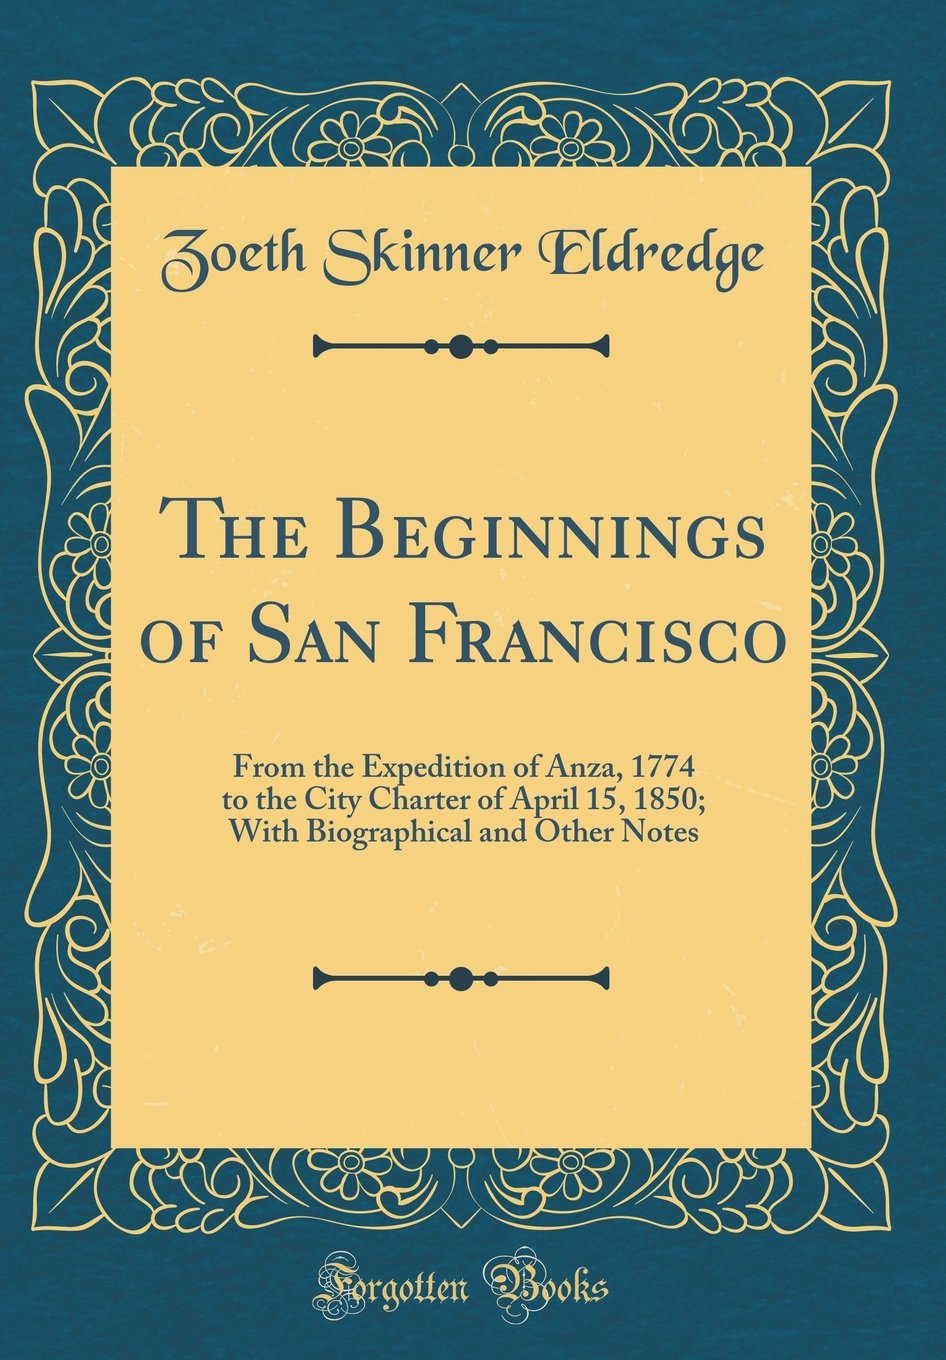 Download The Beginnings of San Francisco: From the Expedition of Anza, 1774 to the City Charter of April 15, 1850; With Biographical and Other Notes (Classic Reprint) ebook